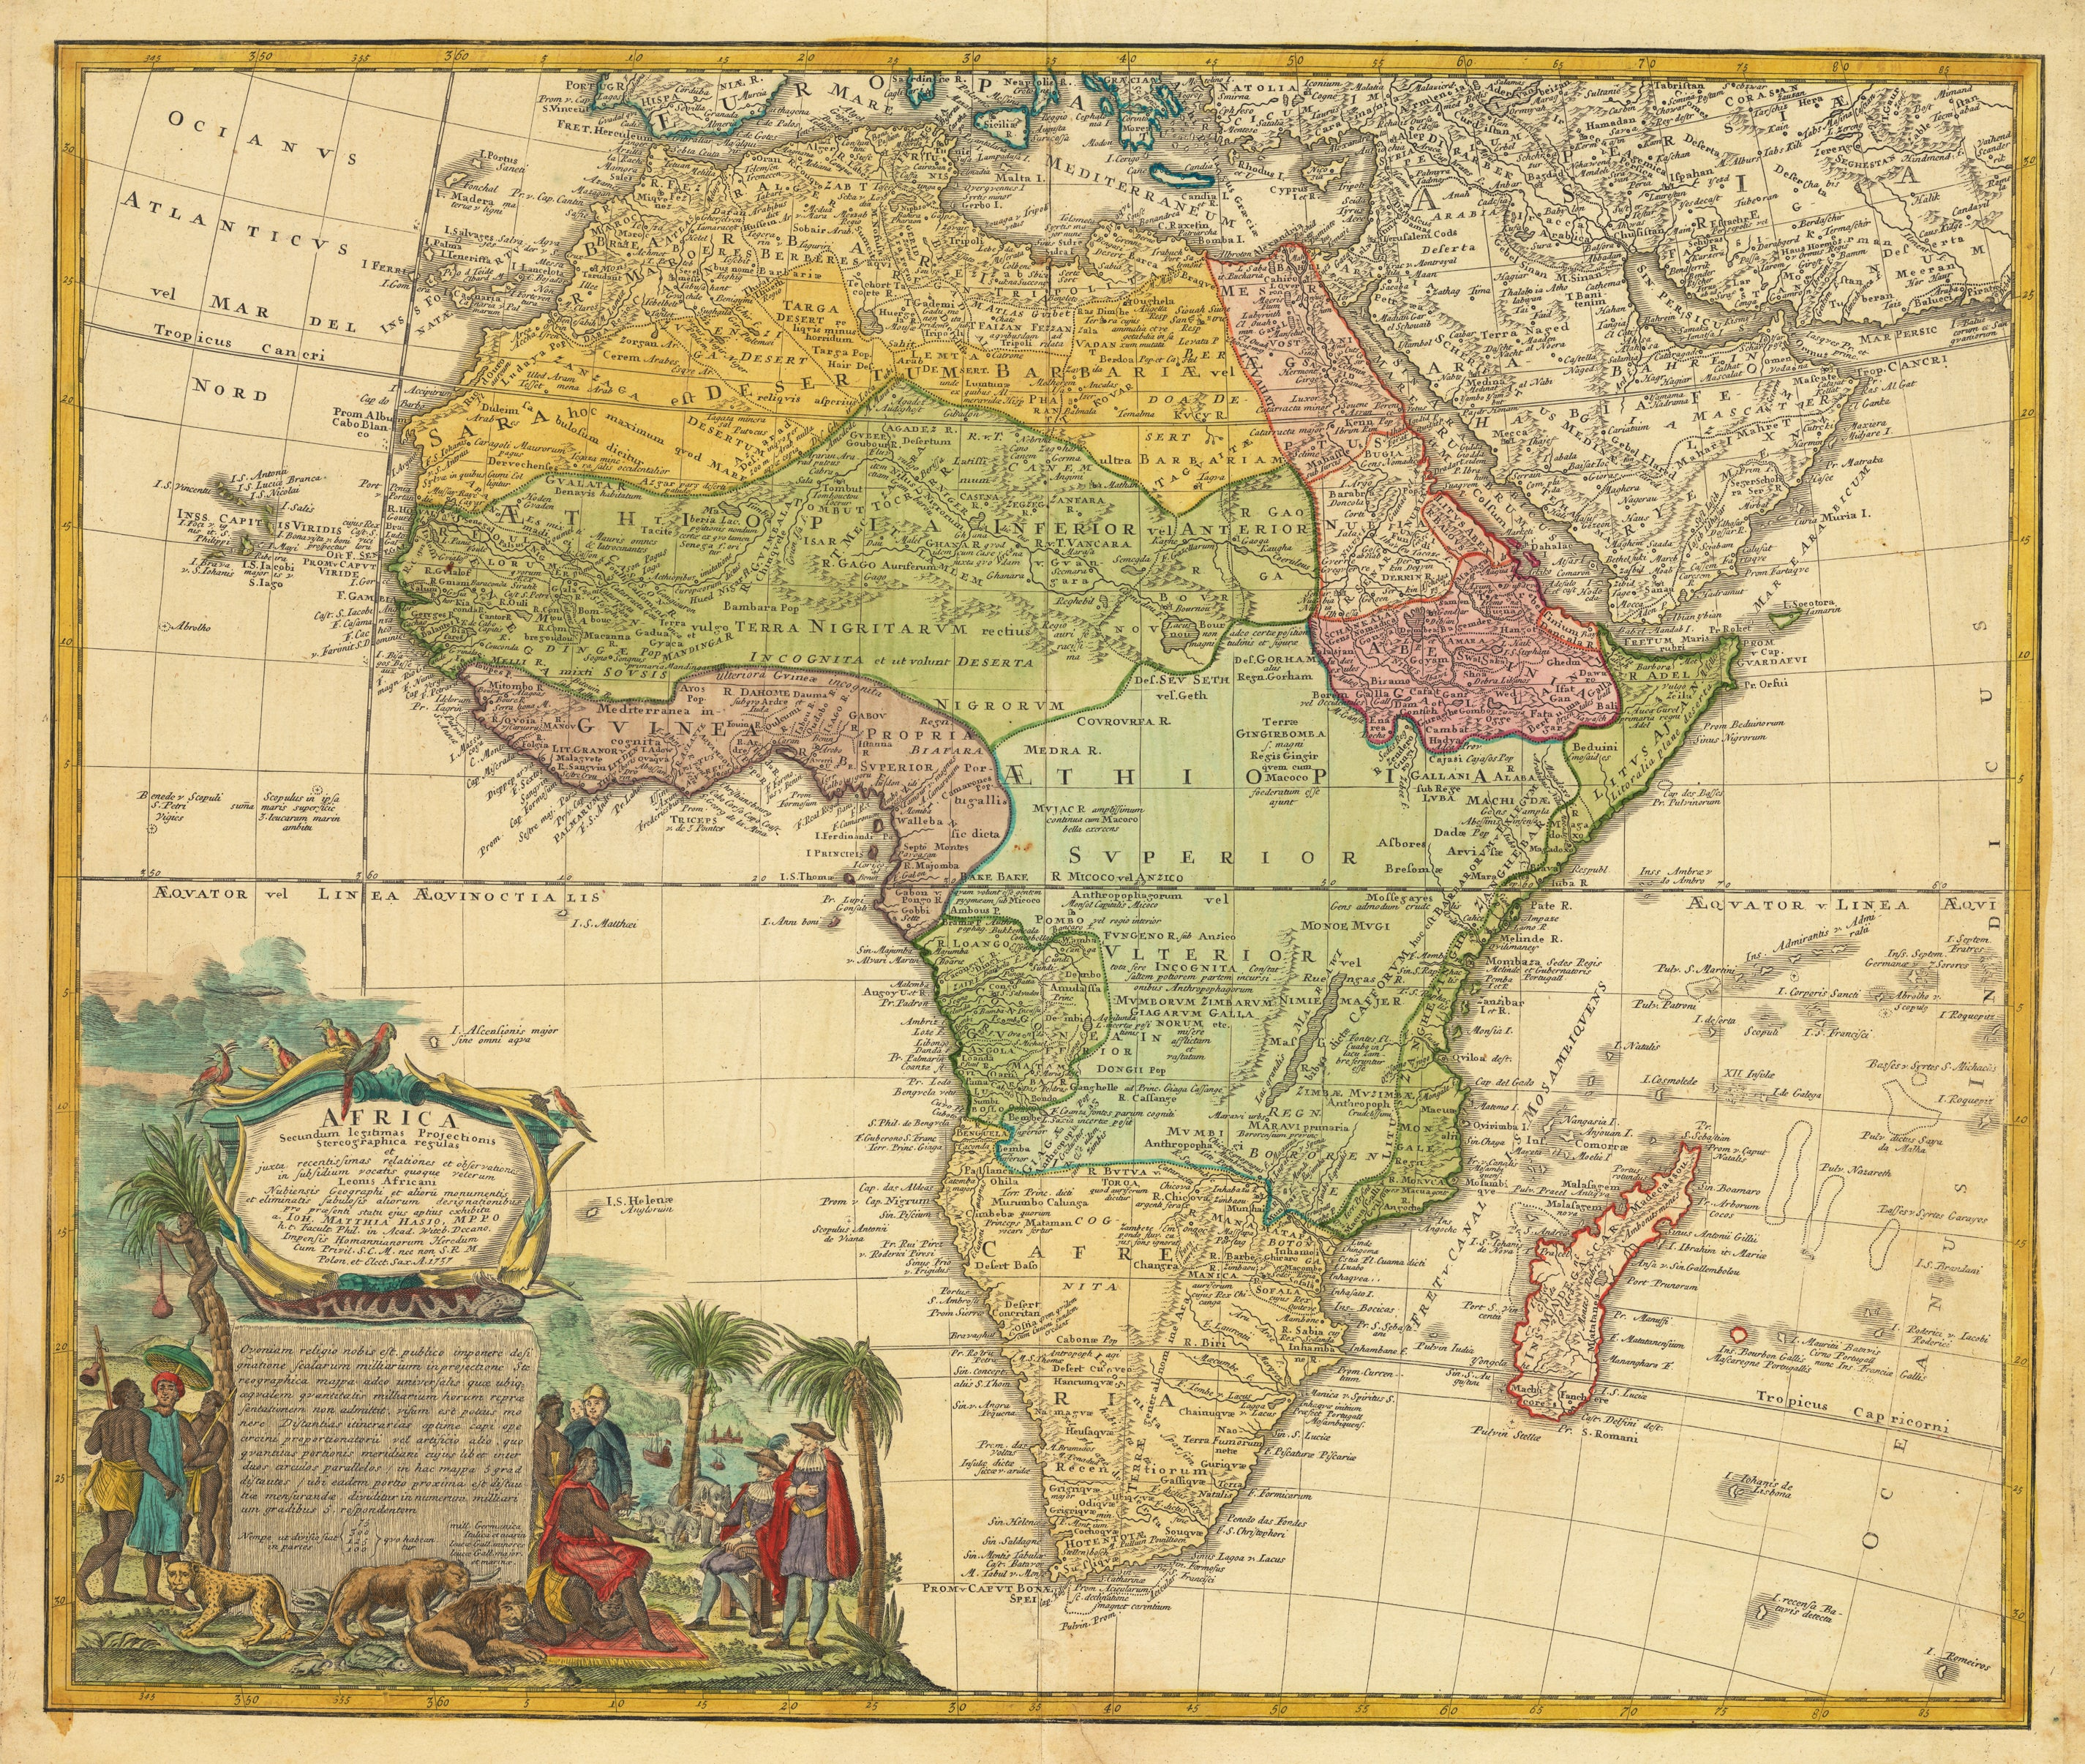 Antique Map of Africa by Homann Heirs 1736